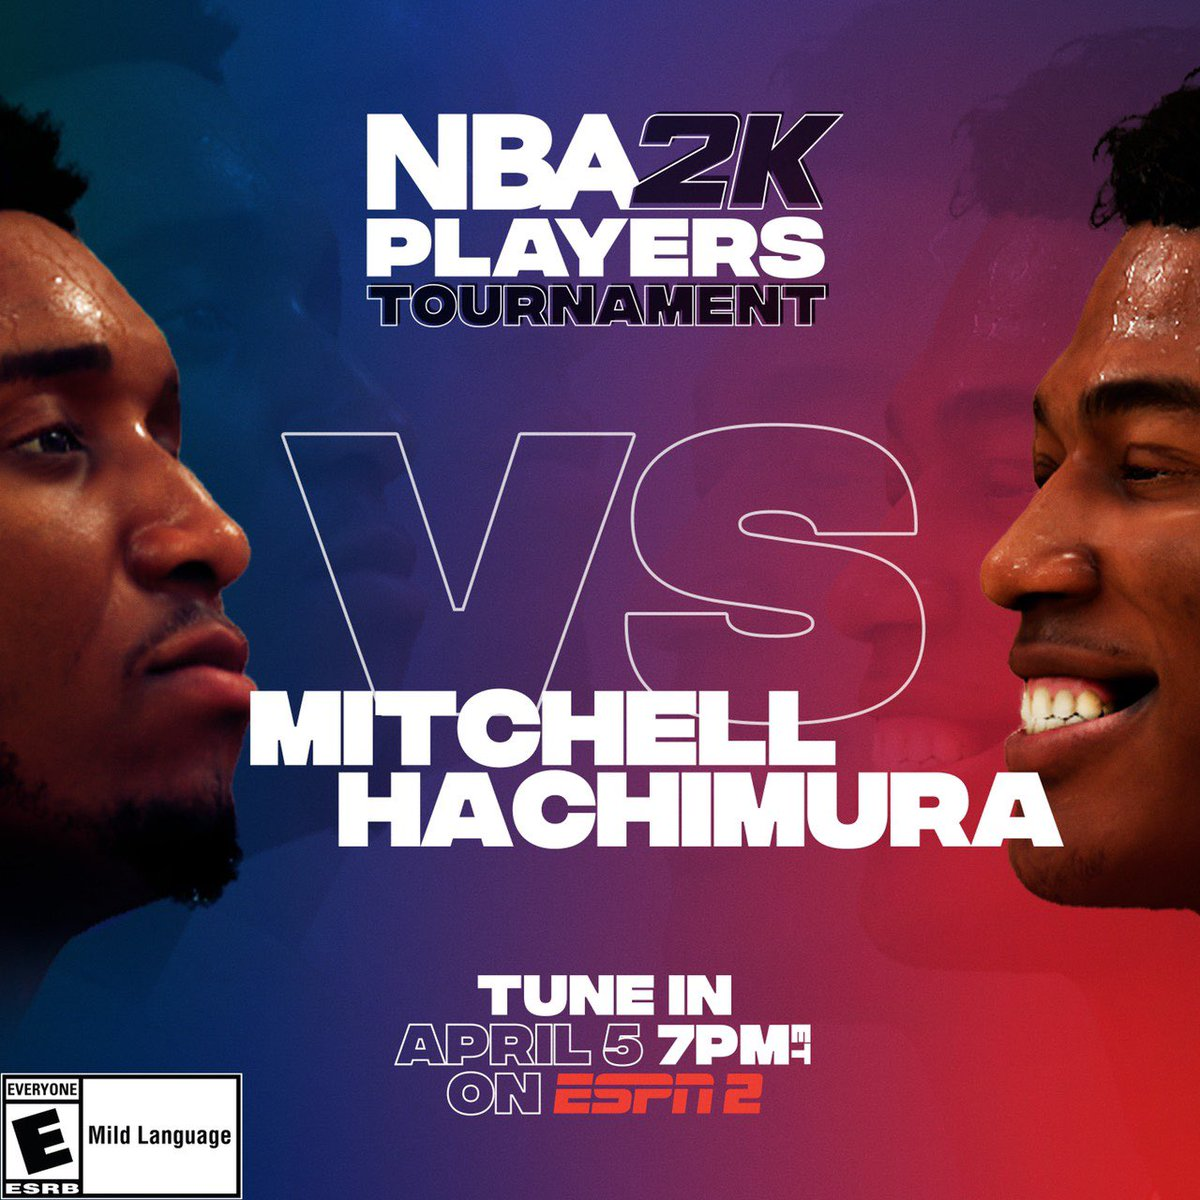 Excited to play basketball again! I'm playing in the #NBA2KTourney at 7pm ET on ESPN2 https://t.co/3lKv33O1Lm